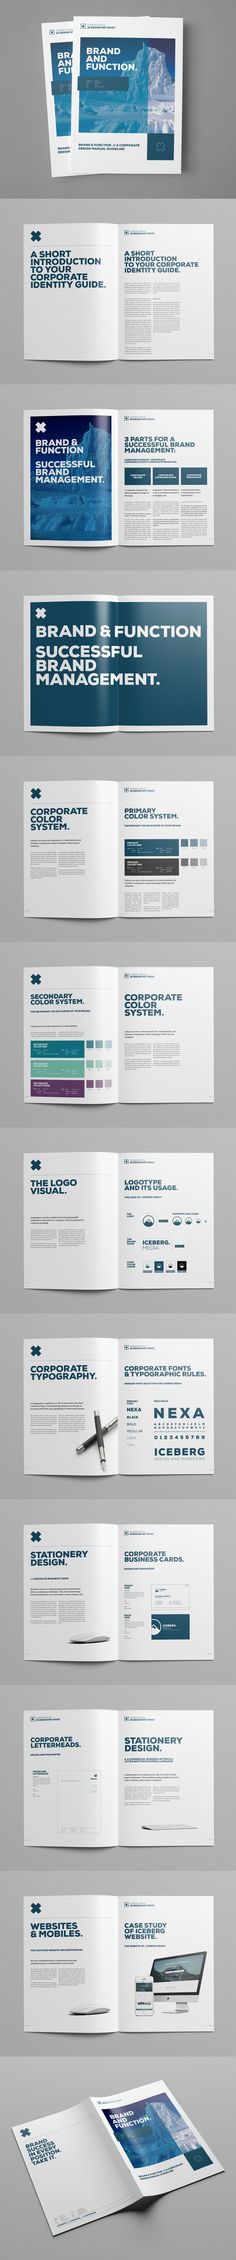 Brand Manual Brochure Template INDD, PSD - 24 Pages, A4 & US Letter size